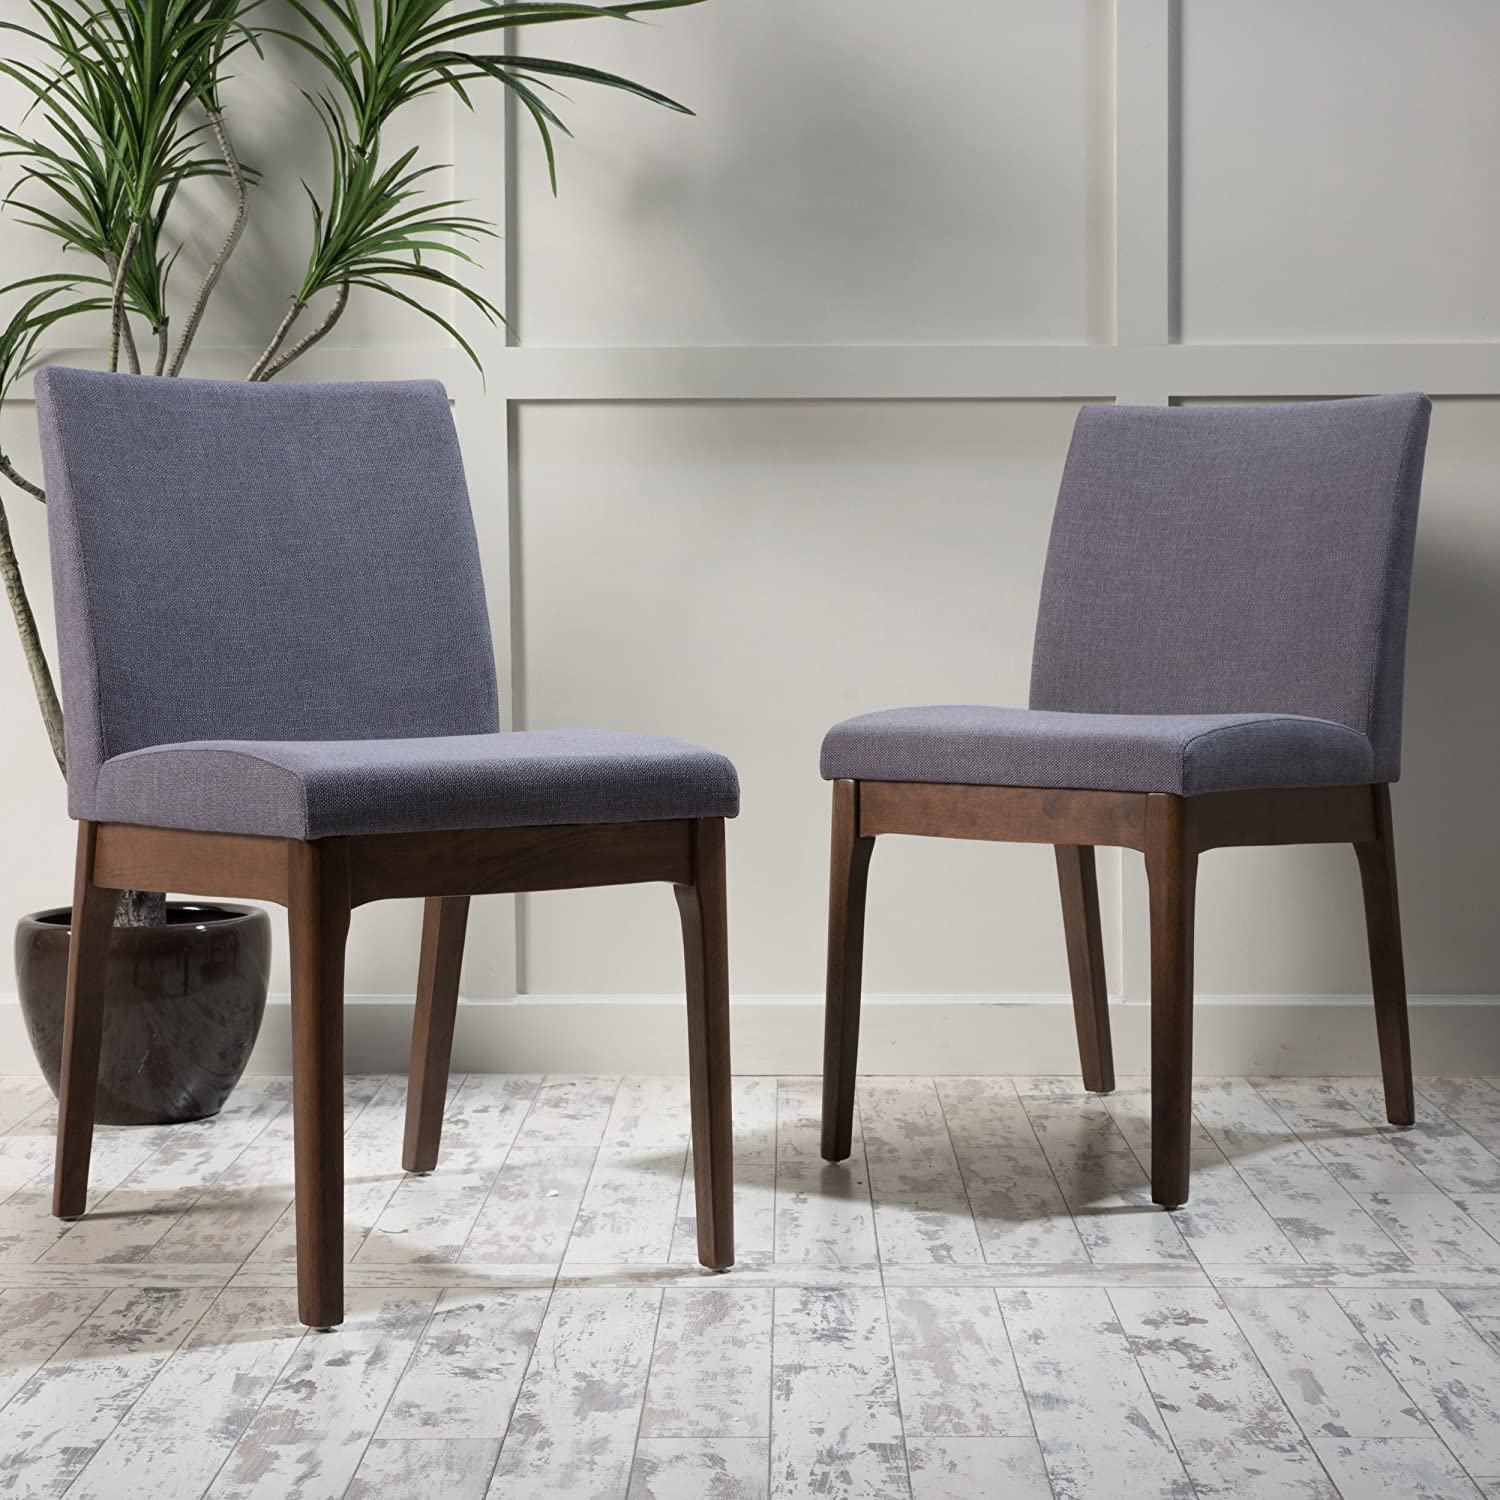 Christopher Knight Home 298987 Kwame Dining Chair (Set of 2), Dark Grey